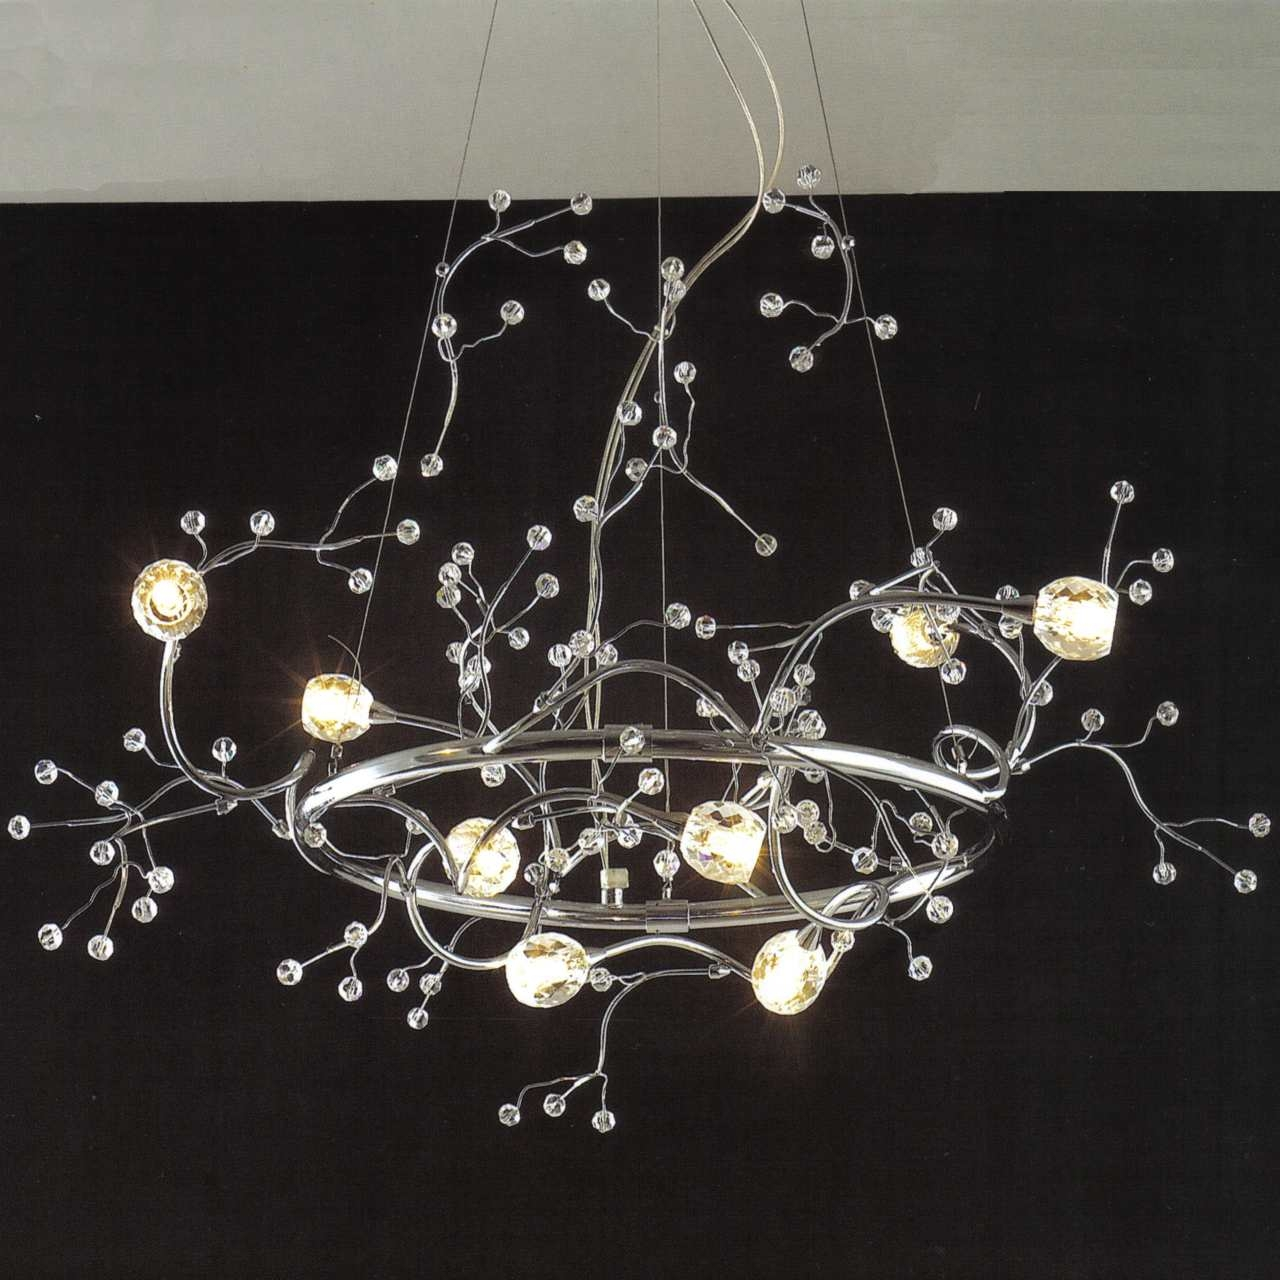 Popular Photo of Branch Crystal Chandelier